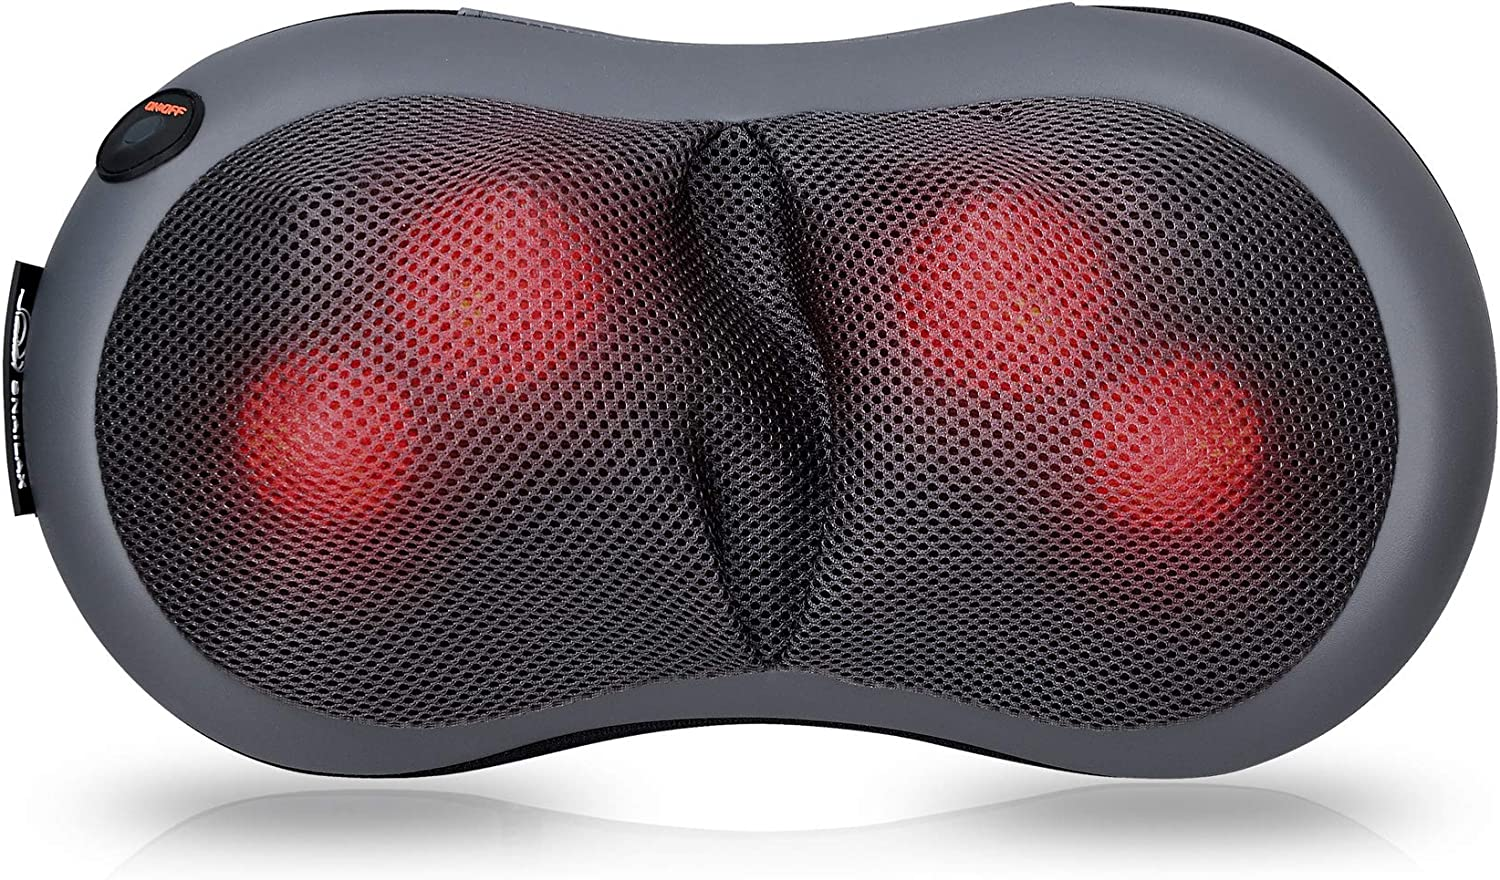 SNAILAX Shiatsu Neck and Back Massager with Heat Deep Tissue Kneading Massage Cushion Portable Pillow Massager for Neck and Shoulder Back,Waist, Relief Muscle Soreness and Pain SL618